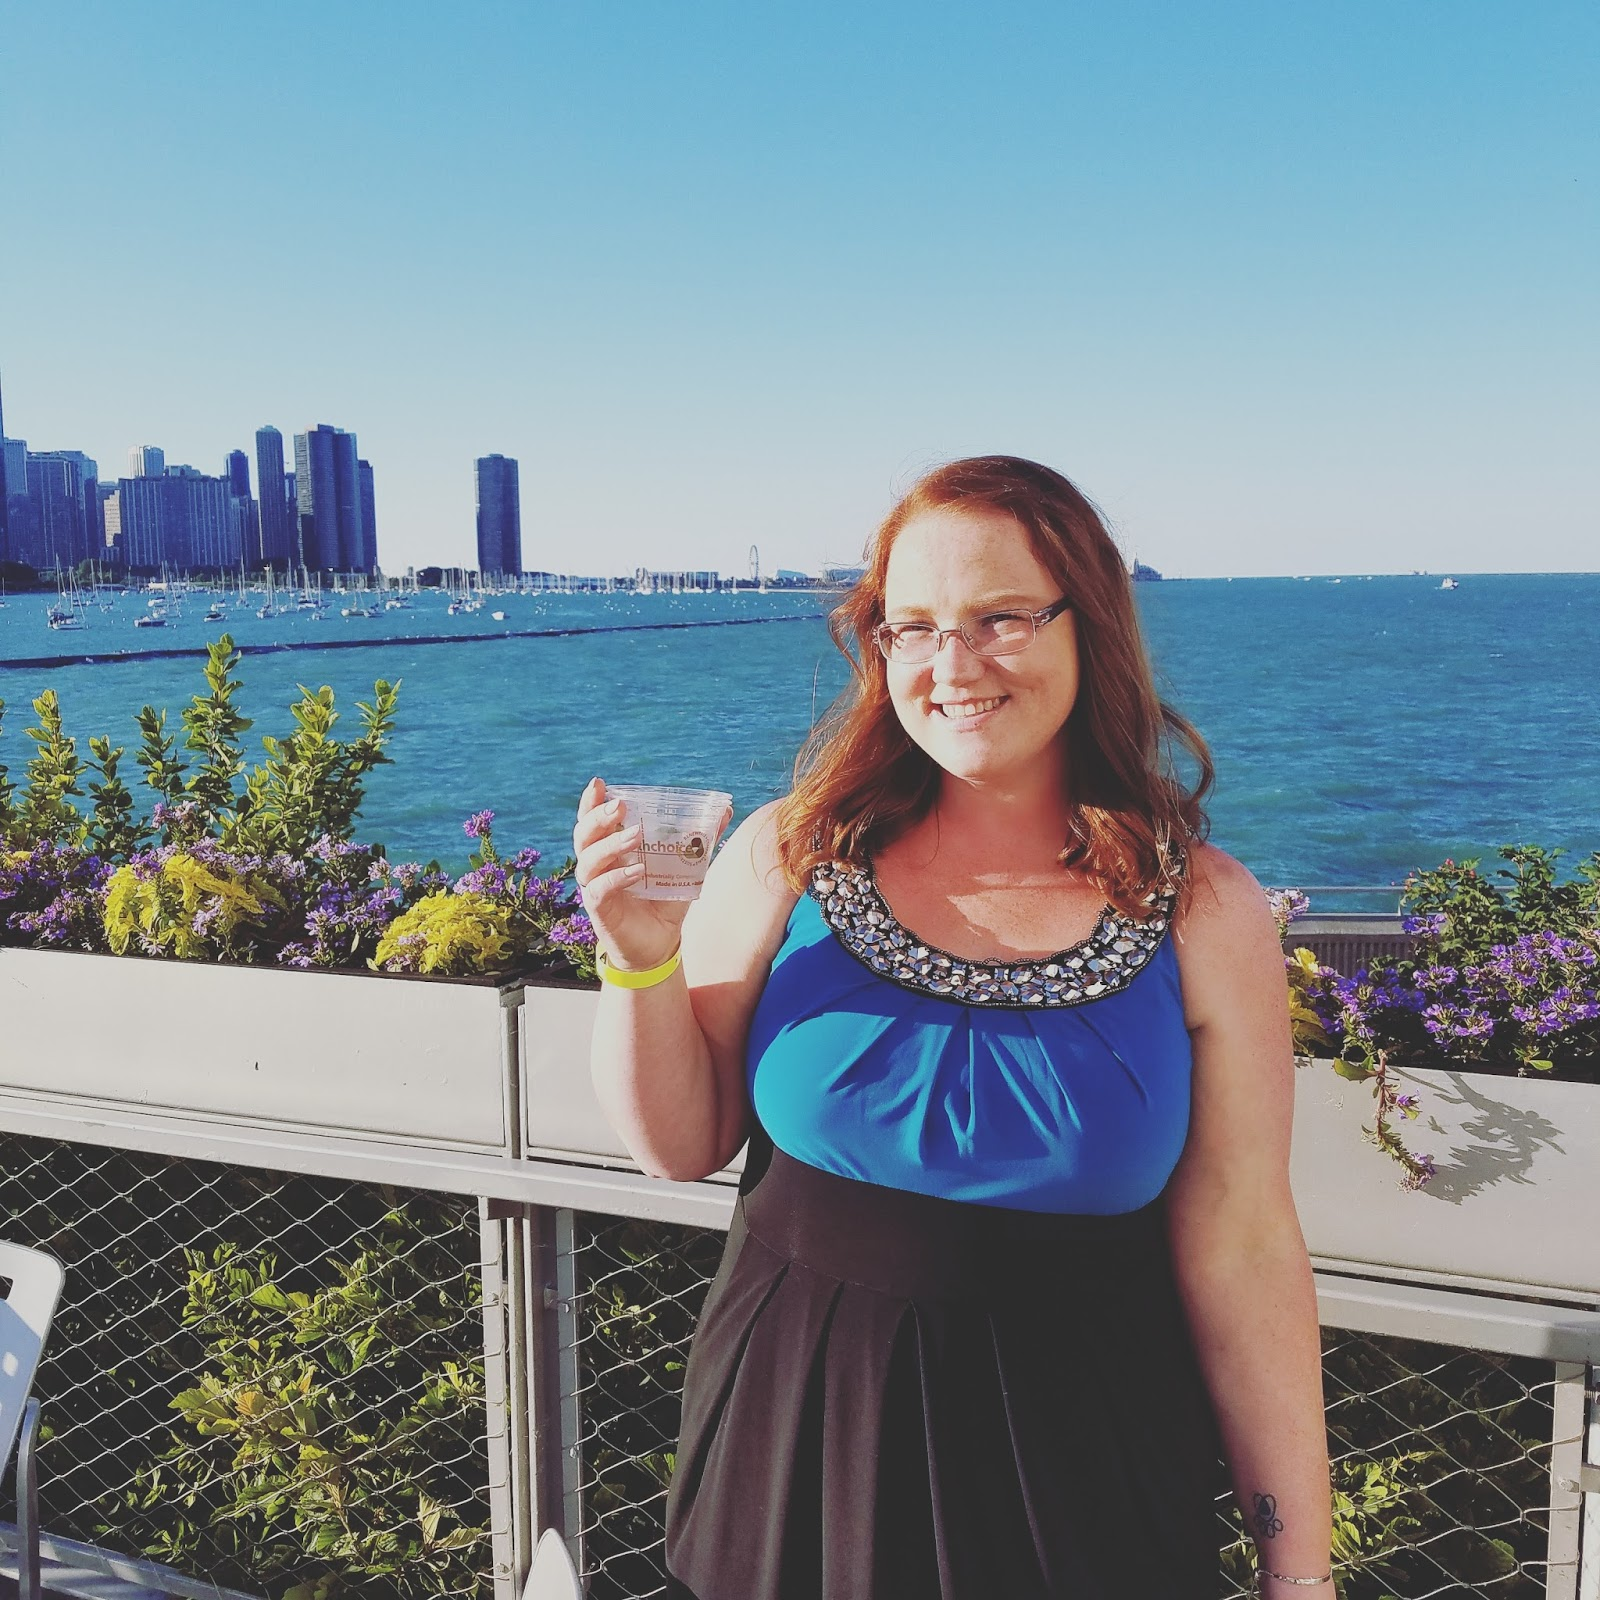 #SheddBLU recap, blogger review, Shedd Aquarium